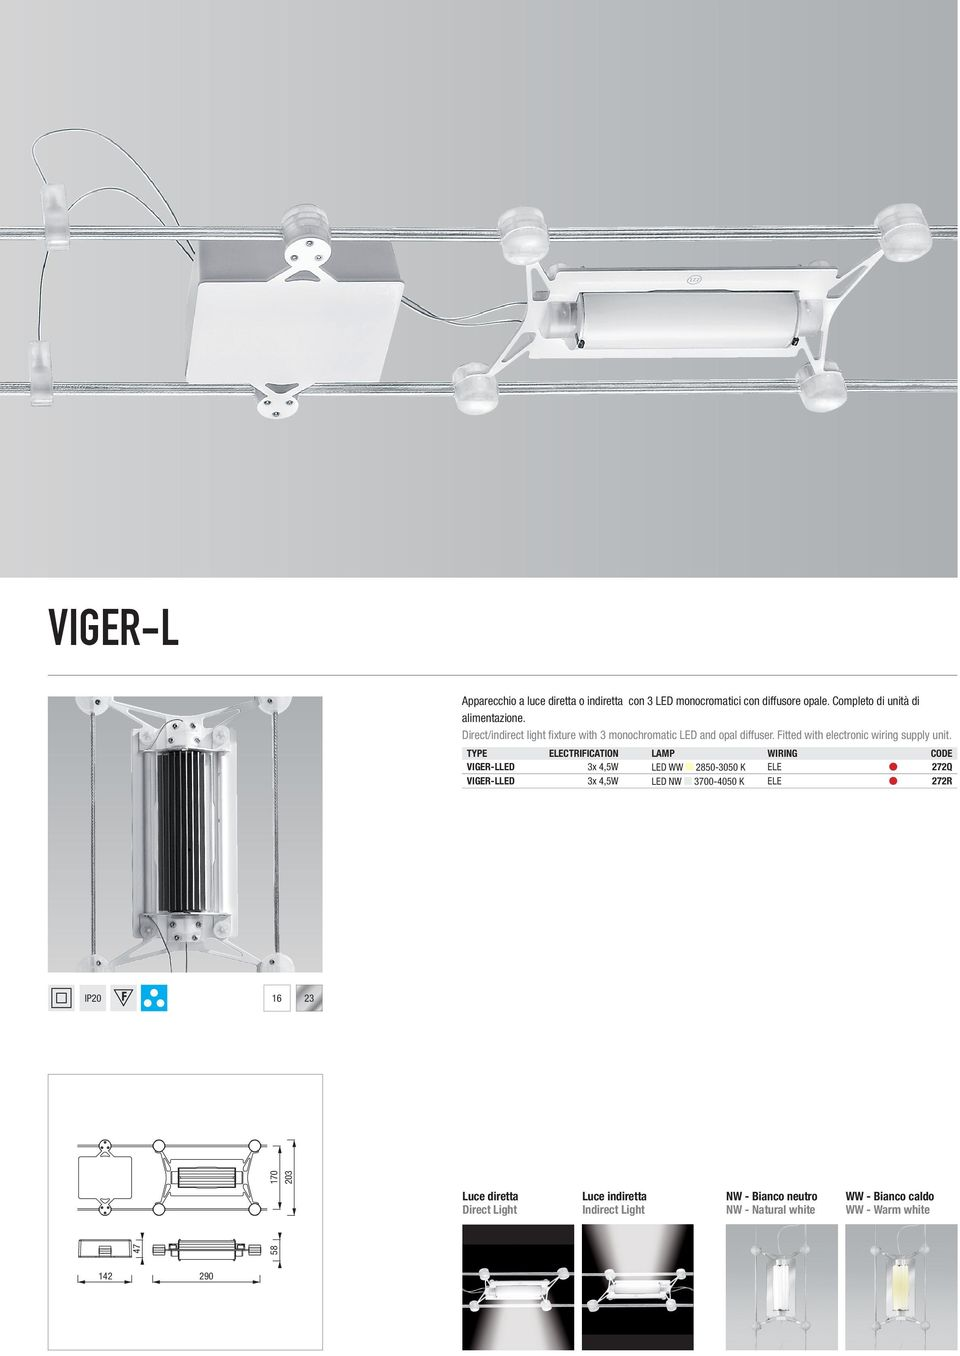 ELECTRIFICATION LAMP WIRING VIGER-LLED 3x 4,5W LED WW 2850-3050 K ELE 272Q VIGER-LLED 3x 4,5W LED NW 3700-4050 K ELE 272R IP20 16